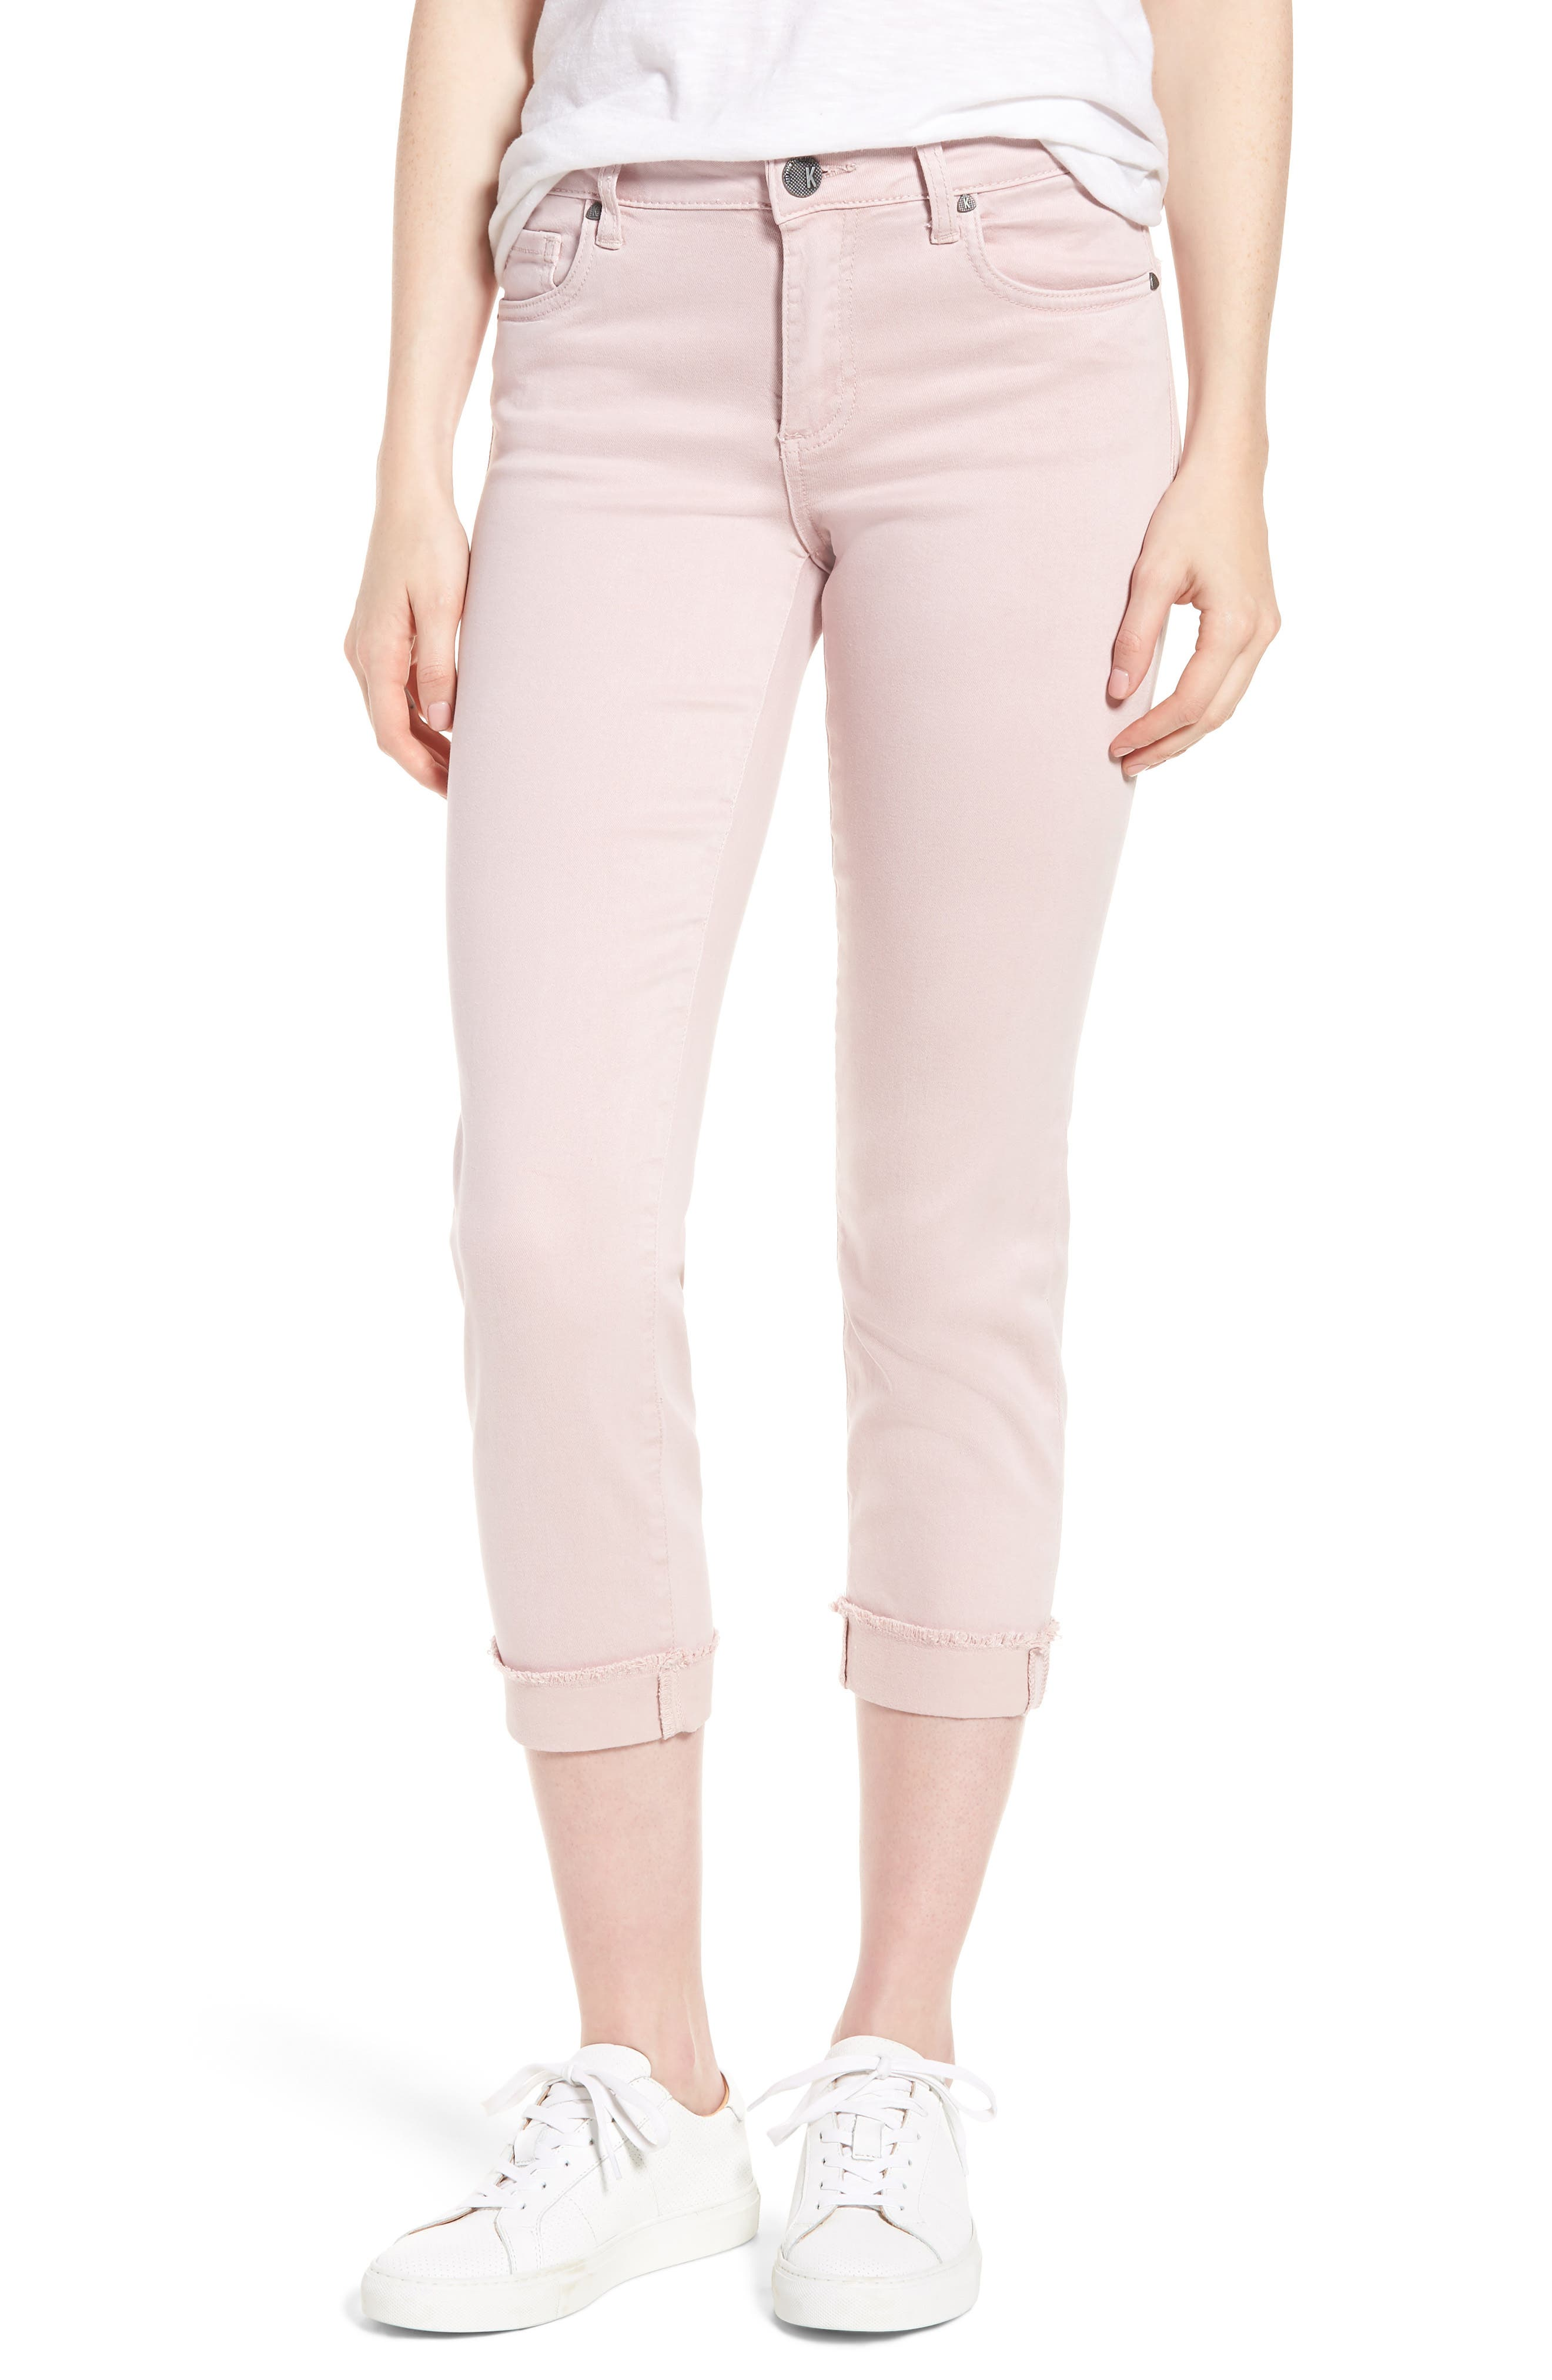 KUT from the Kloth Amy Crop Skinny Jeans,                         Main,                         color, 682